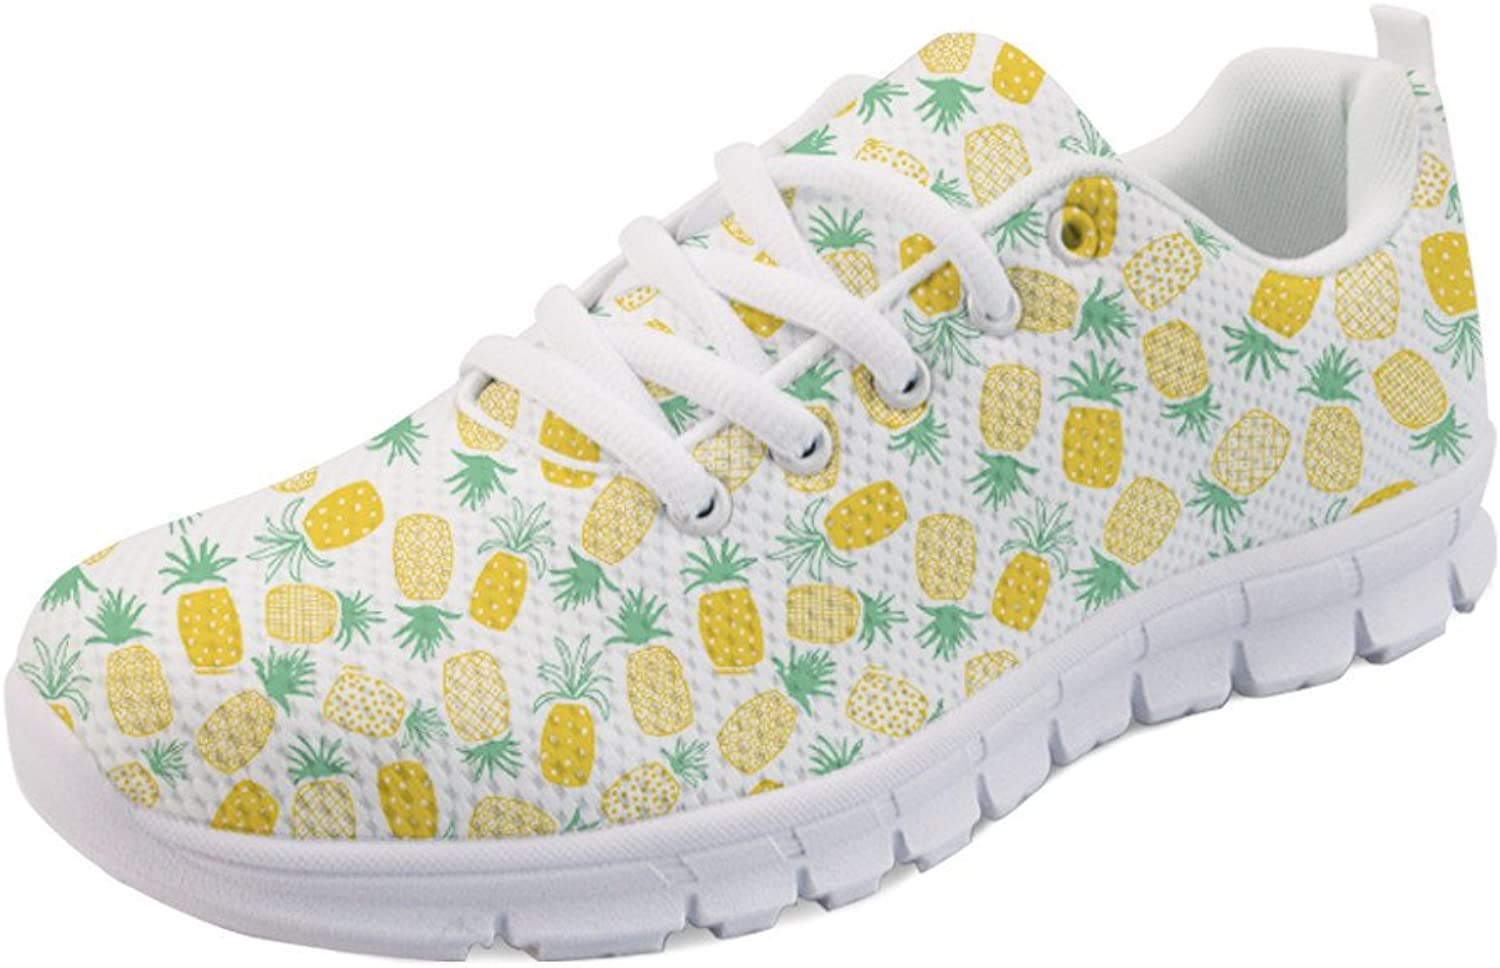 INSTANTARTS Summer Fruit Pineapple Pattern Ladies Running Sports Tennis shoes Sneaker Lace up US8